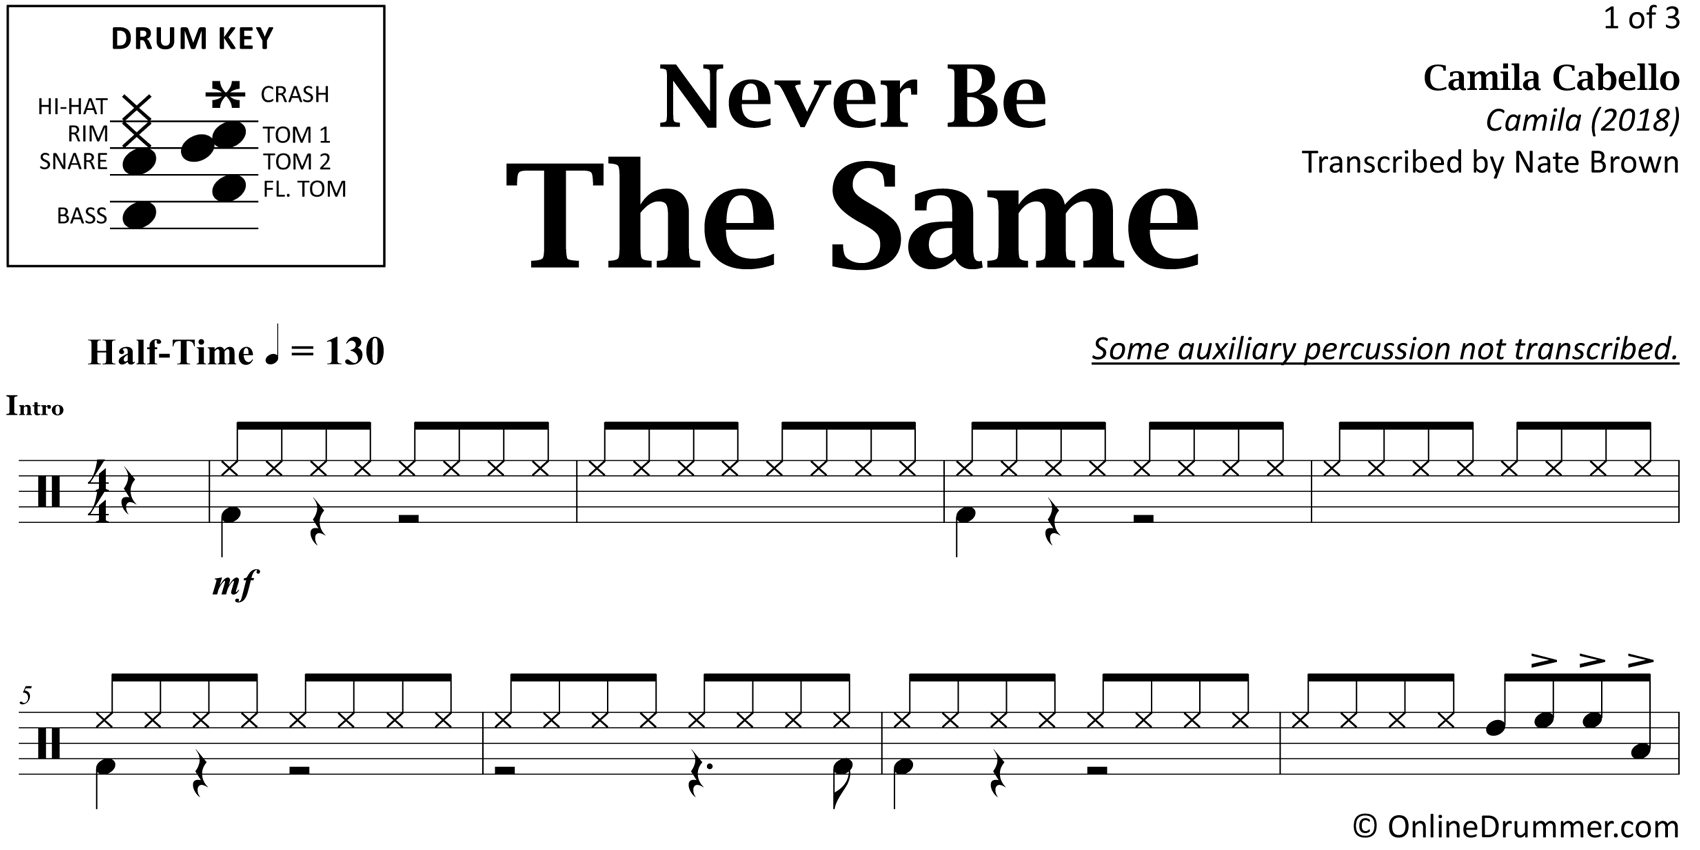 Never Be The Same - Camila Cabello - Drum Sheet Music